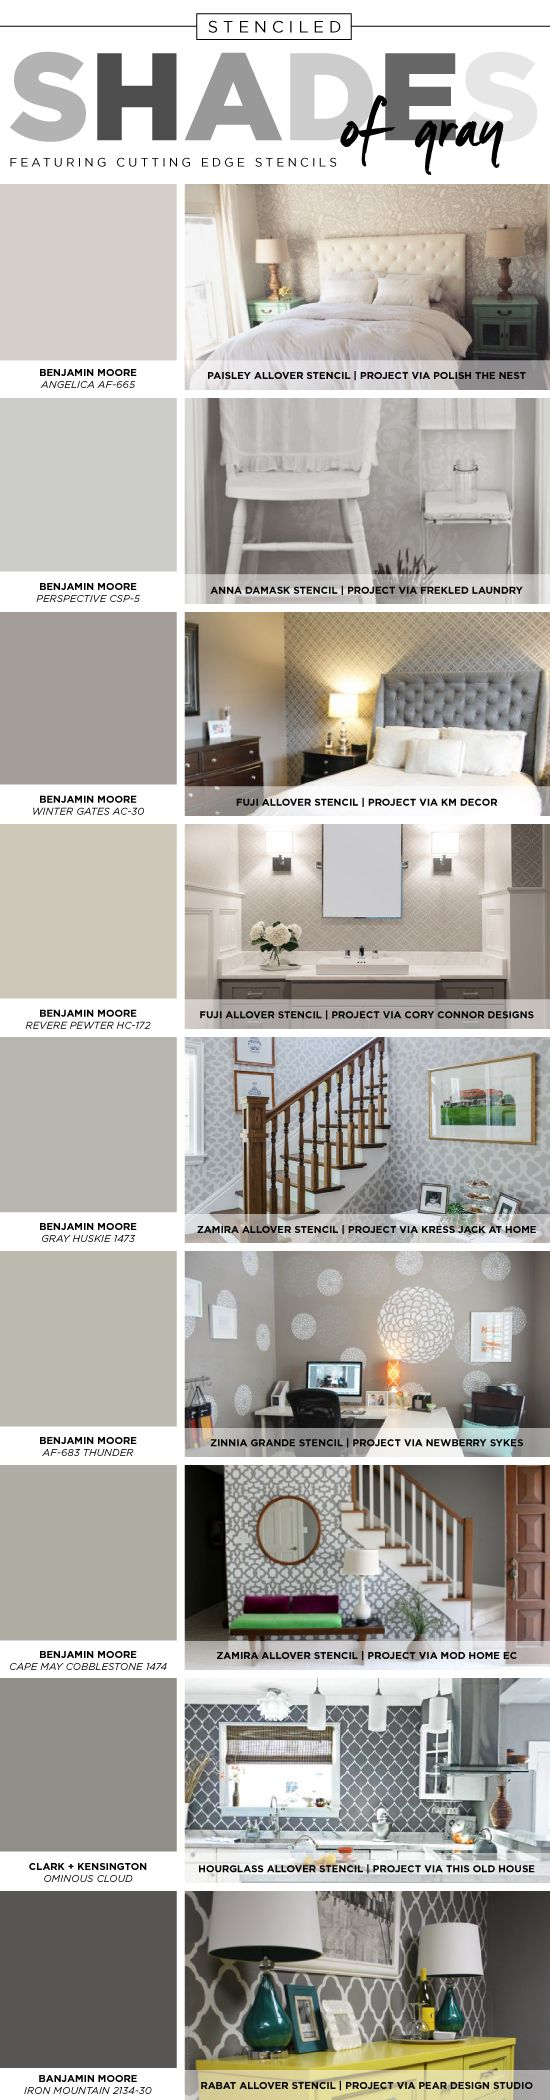 Cutting Edge Stencils shares DIY stenciled shades of gray room ideas. http://www.cuttingedgestencils.com/wall-stencils-stencil-designs.html